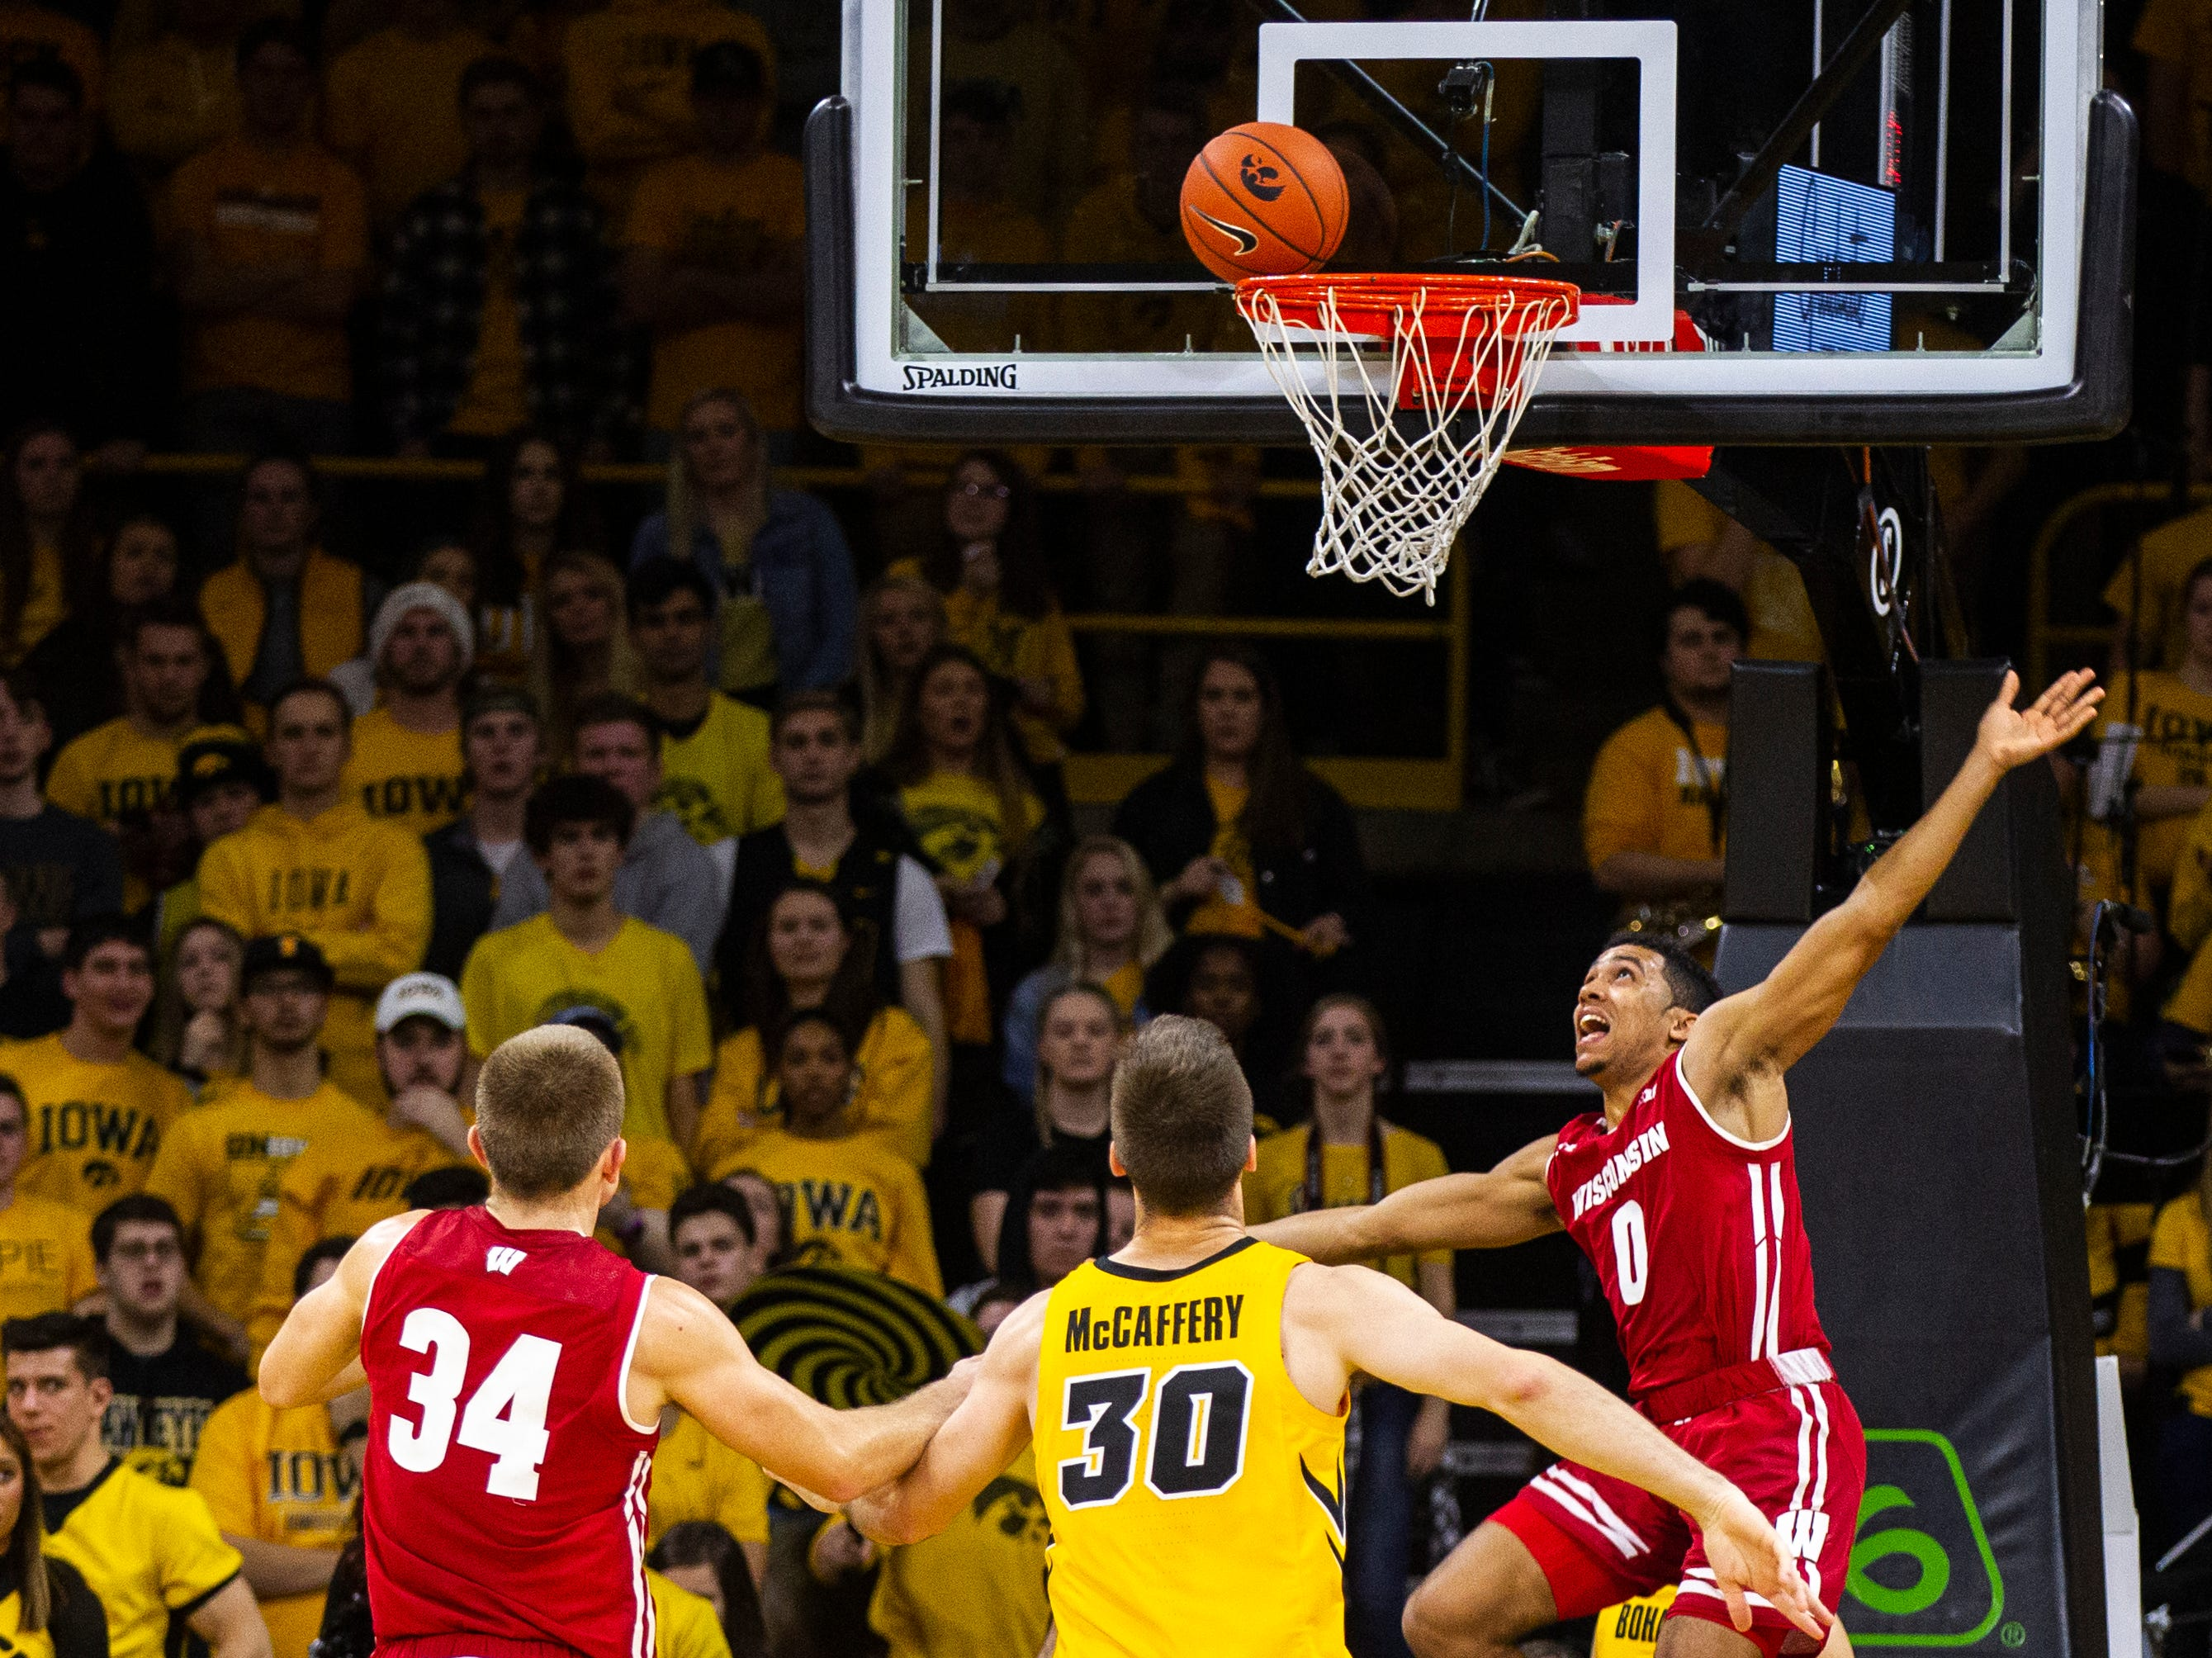 Wisconsin's D'Mitrik Trice (0) misses a basket during a NCAA Big Ten Conference men's basketball game on Friday, Nov. 30, 2018, at Carver-Hawkeye Arena in Iowa City.